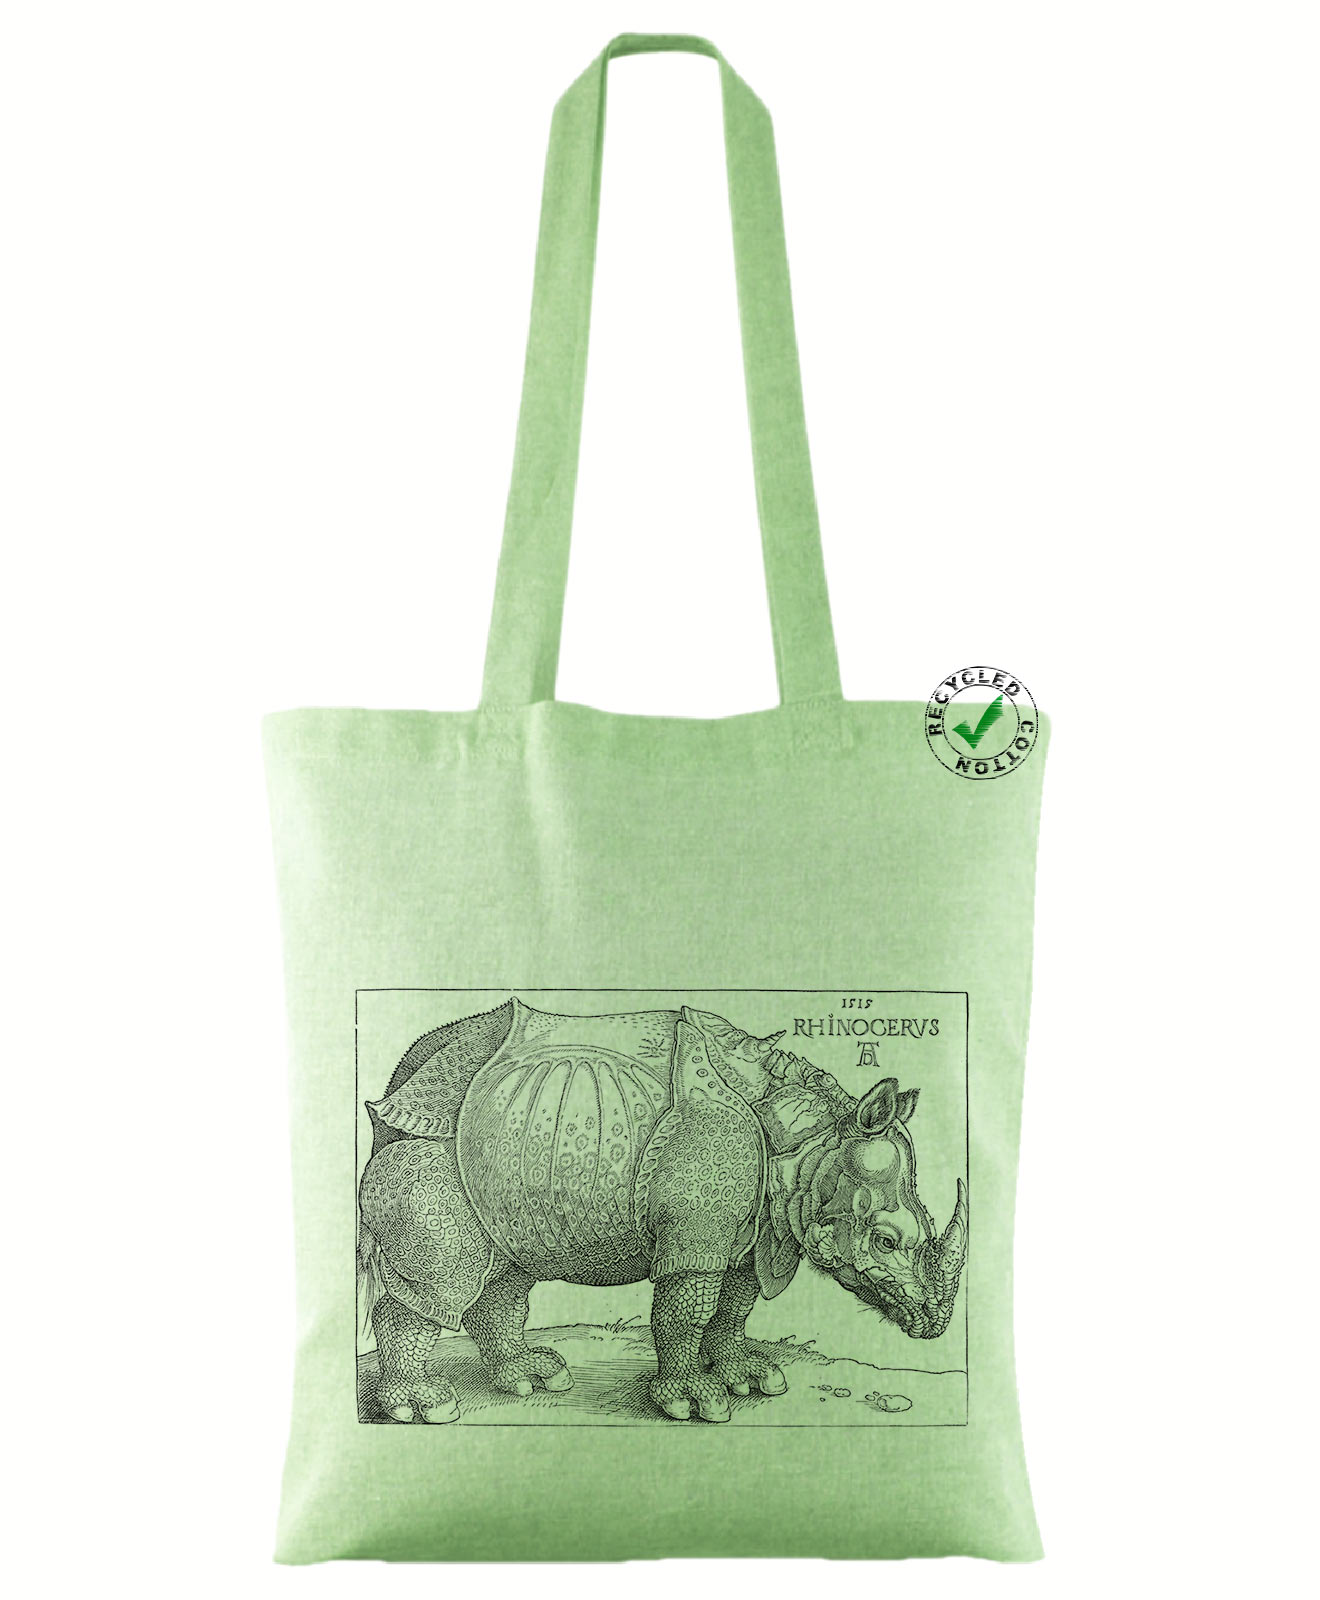 Rhinocerus Recycled Tote Bag